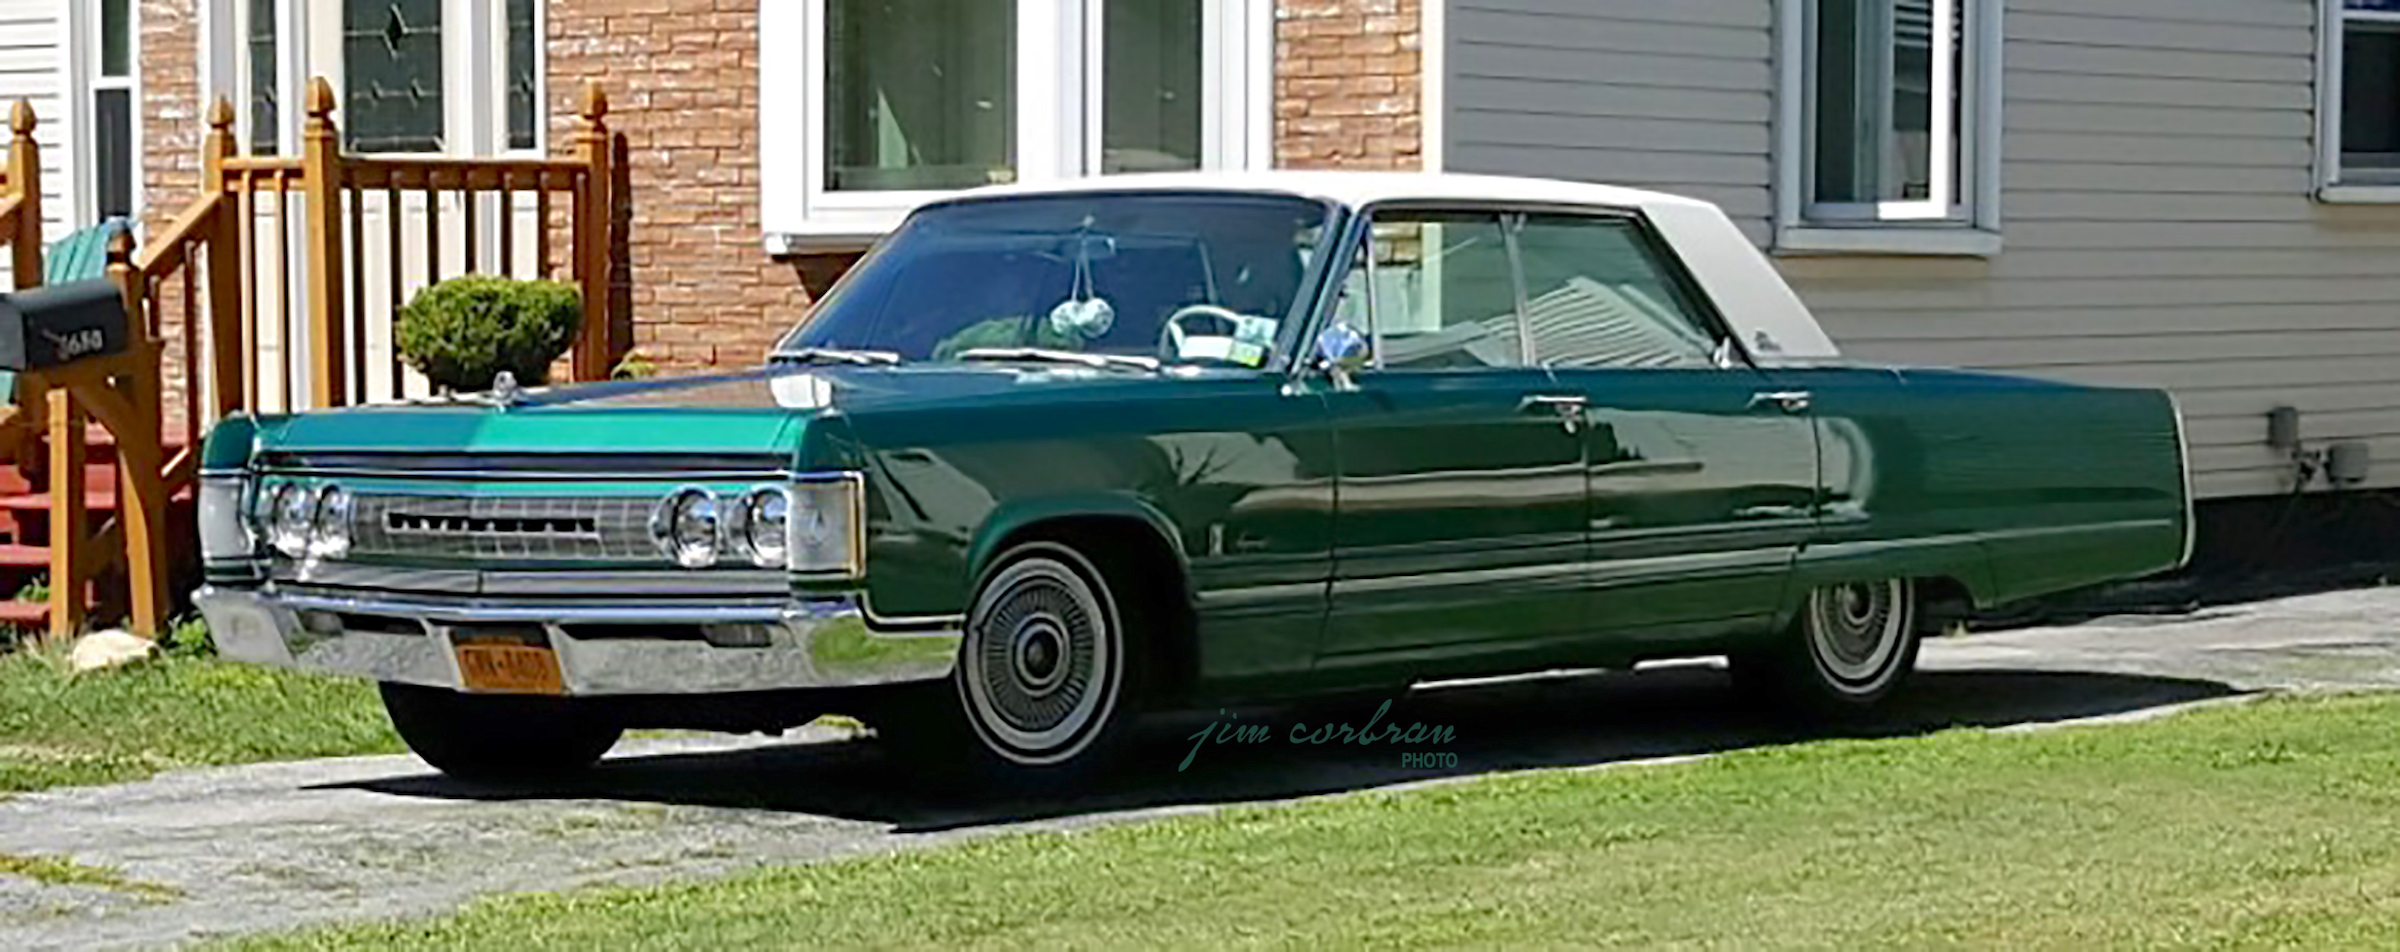 RealRides of WNY - 1967 Imperial Crown